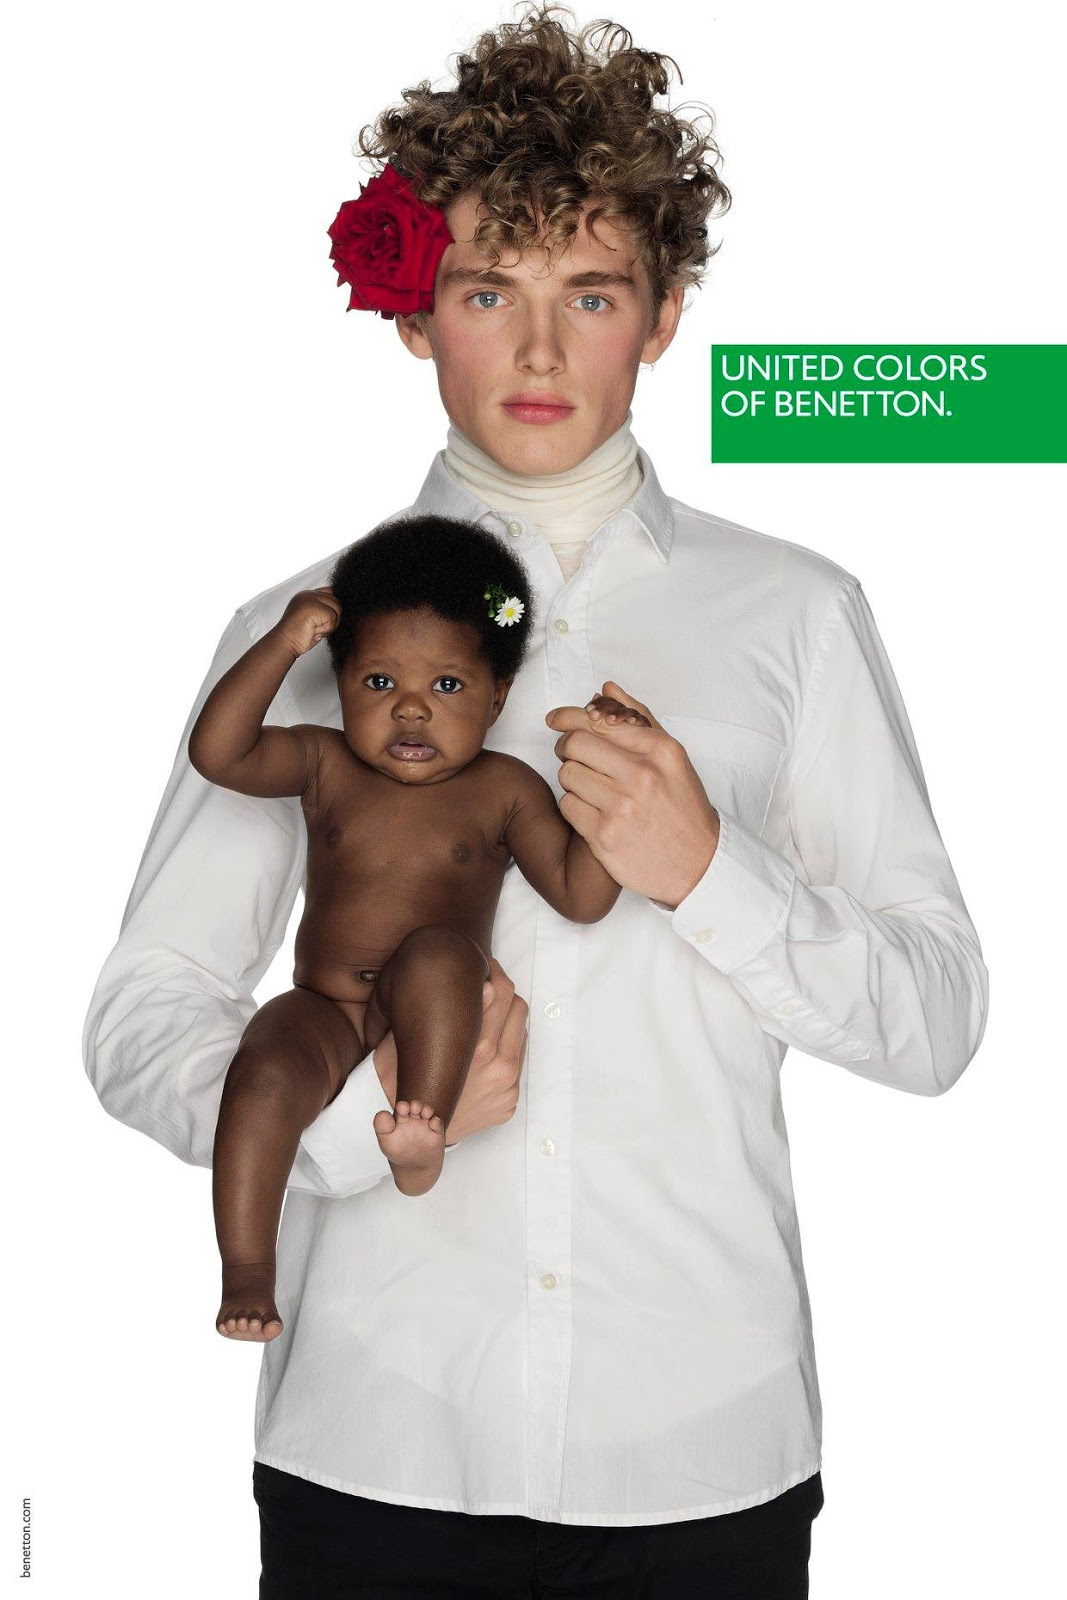 United Colors of Benetton Spring Summer 2018 Ads Campaign